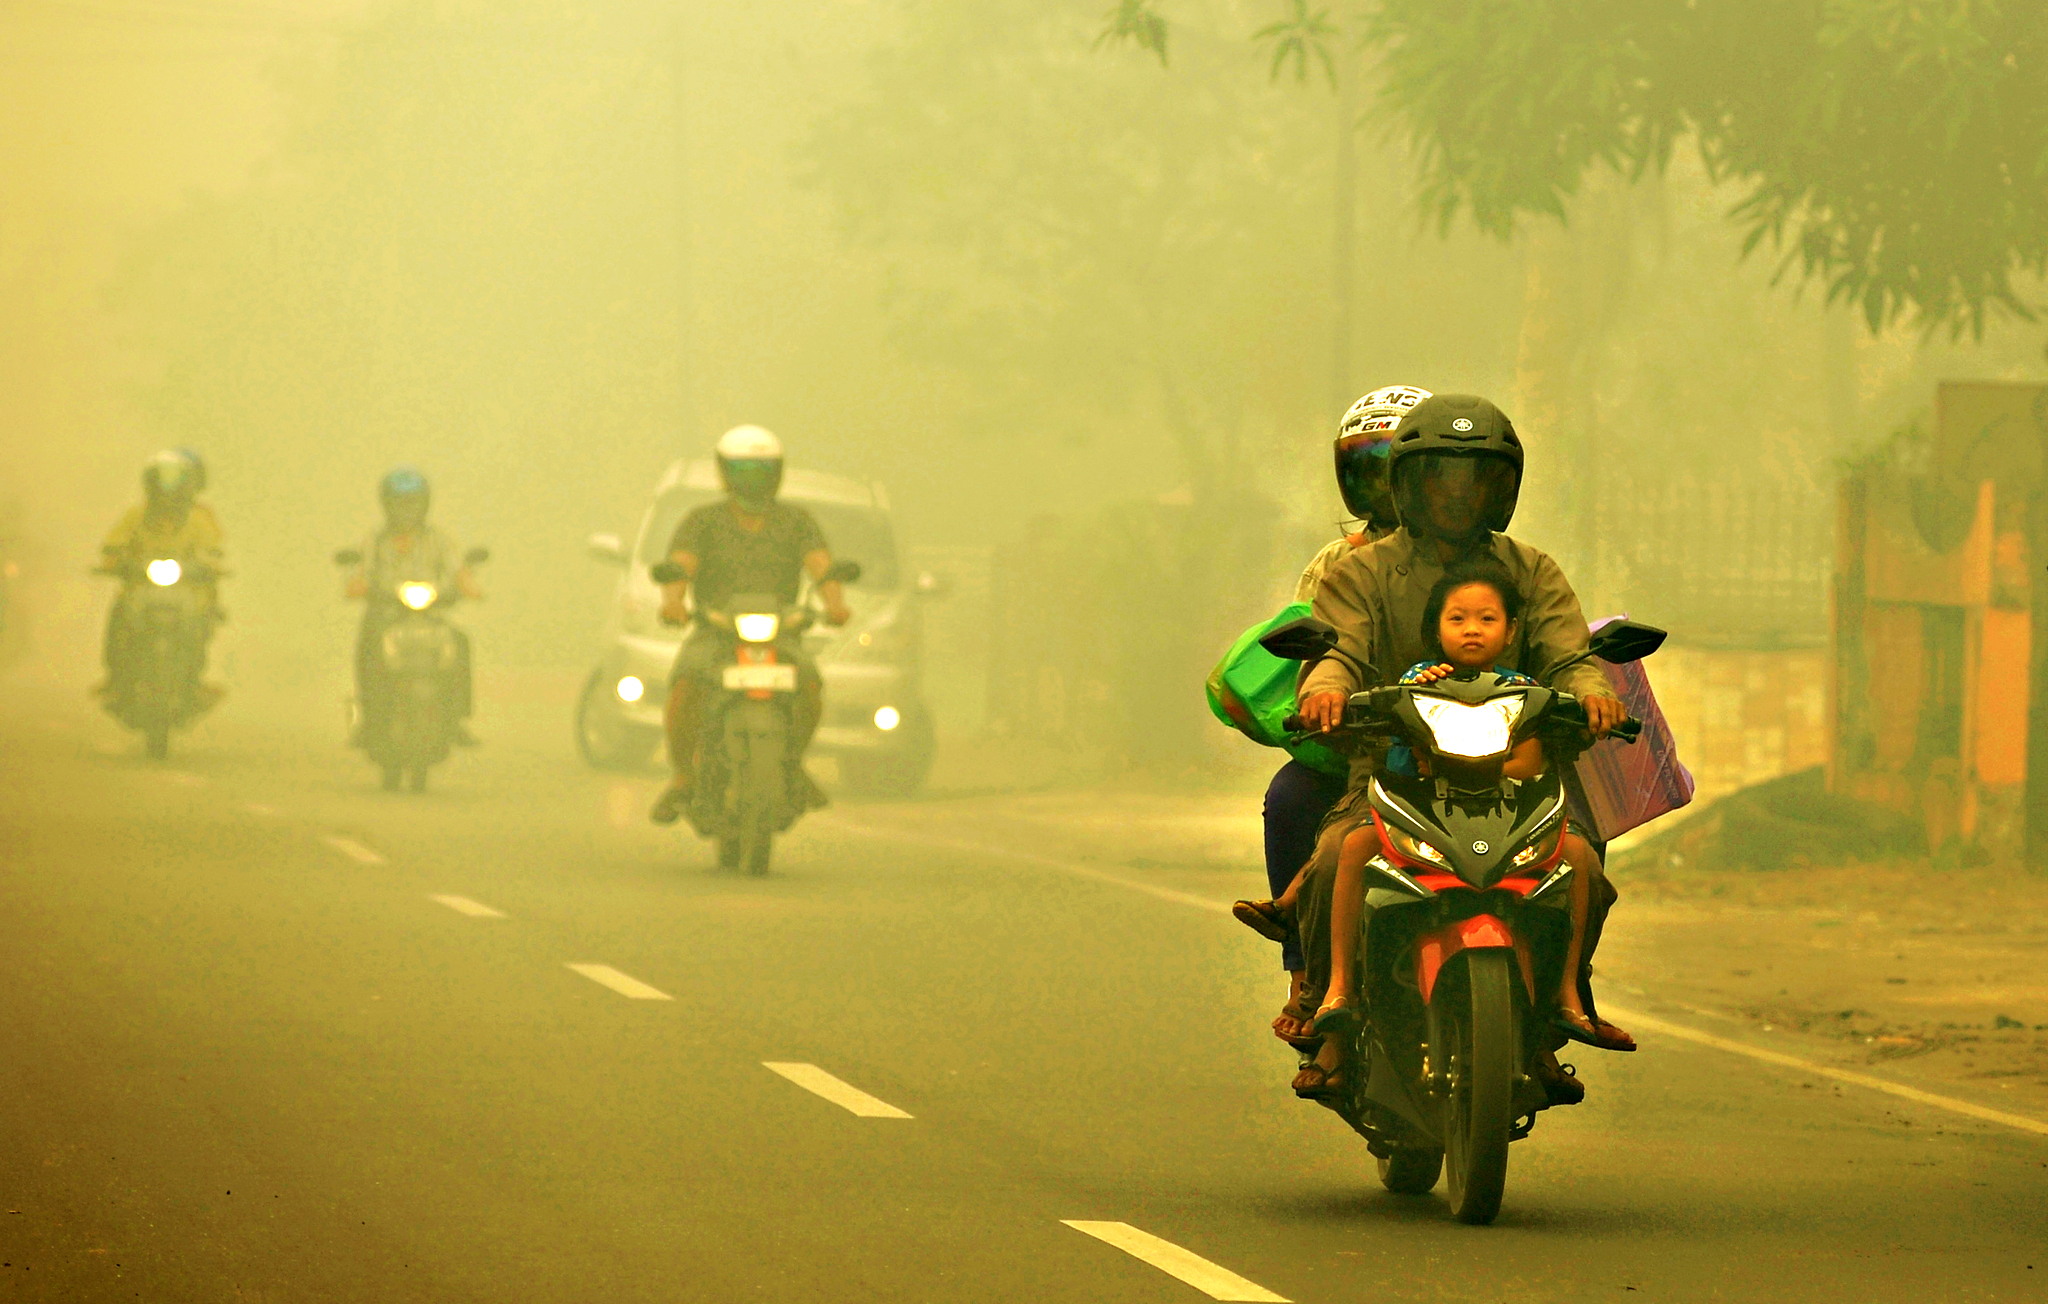 Motorists ride on a road as thick haze from forest fires shroud the city in Palangkaraya, Central Borneo, Indonesia, Tuesday, Oct. 27, 2015. The haze has blanketed parts of western Indonesia for about two months and affected neighboring countries like Singapore, Malaysia and Thailand